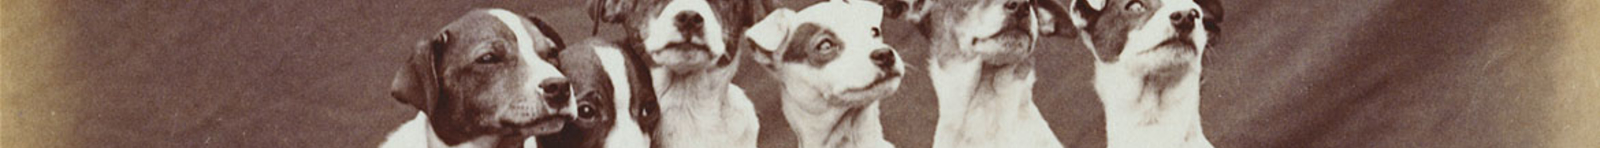 A row of terrier dogs looking towards the camera